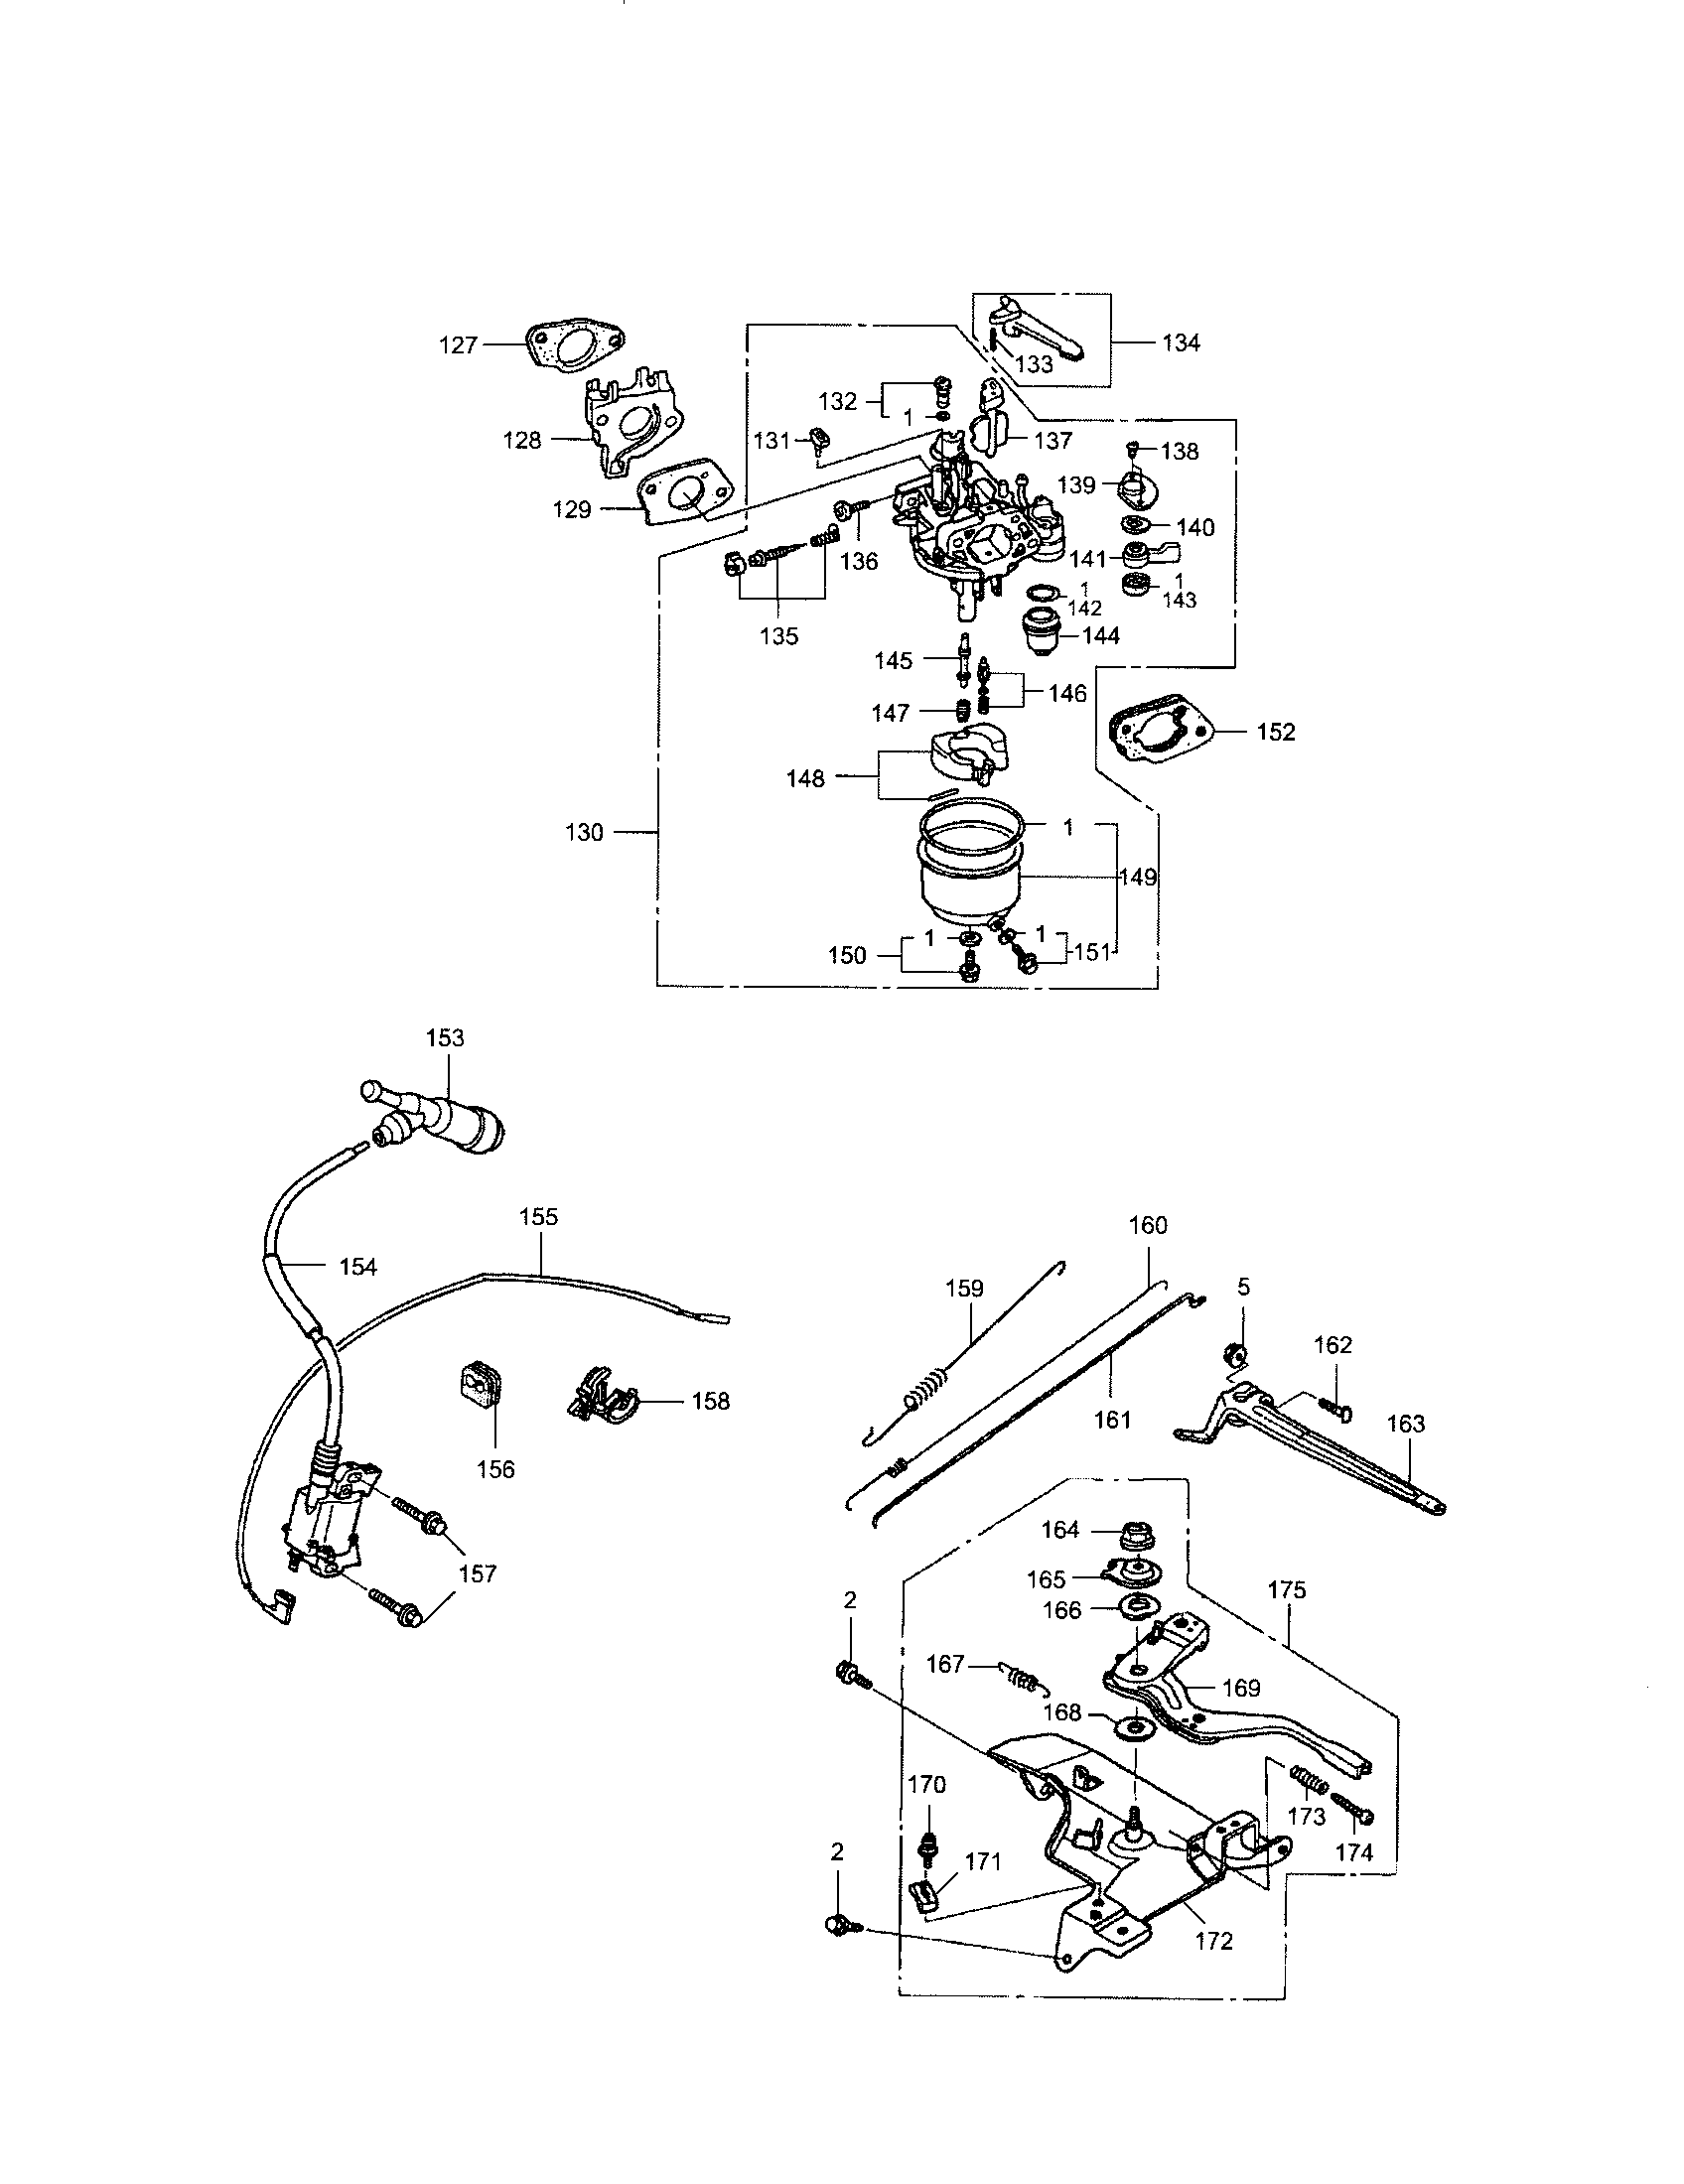 [BL_2909] Honda Gx390 Engine Parts With Diagram Schematic